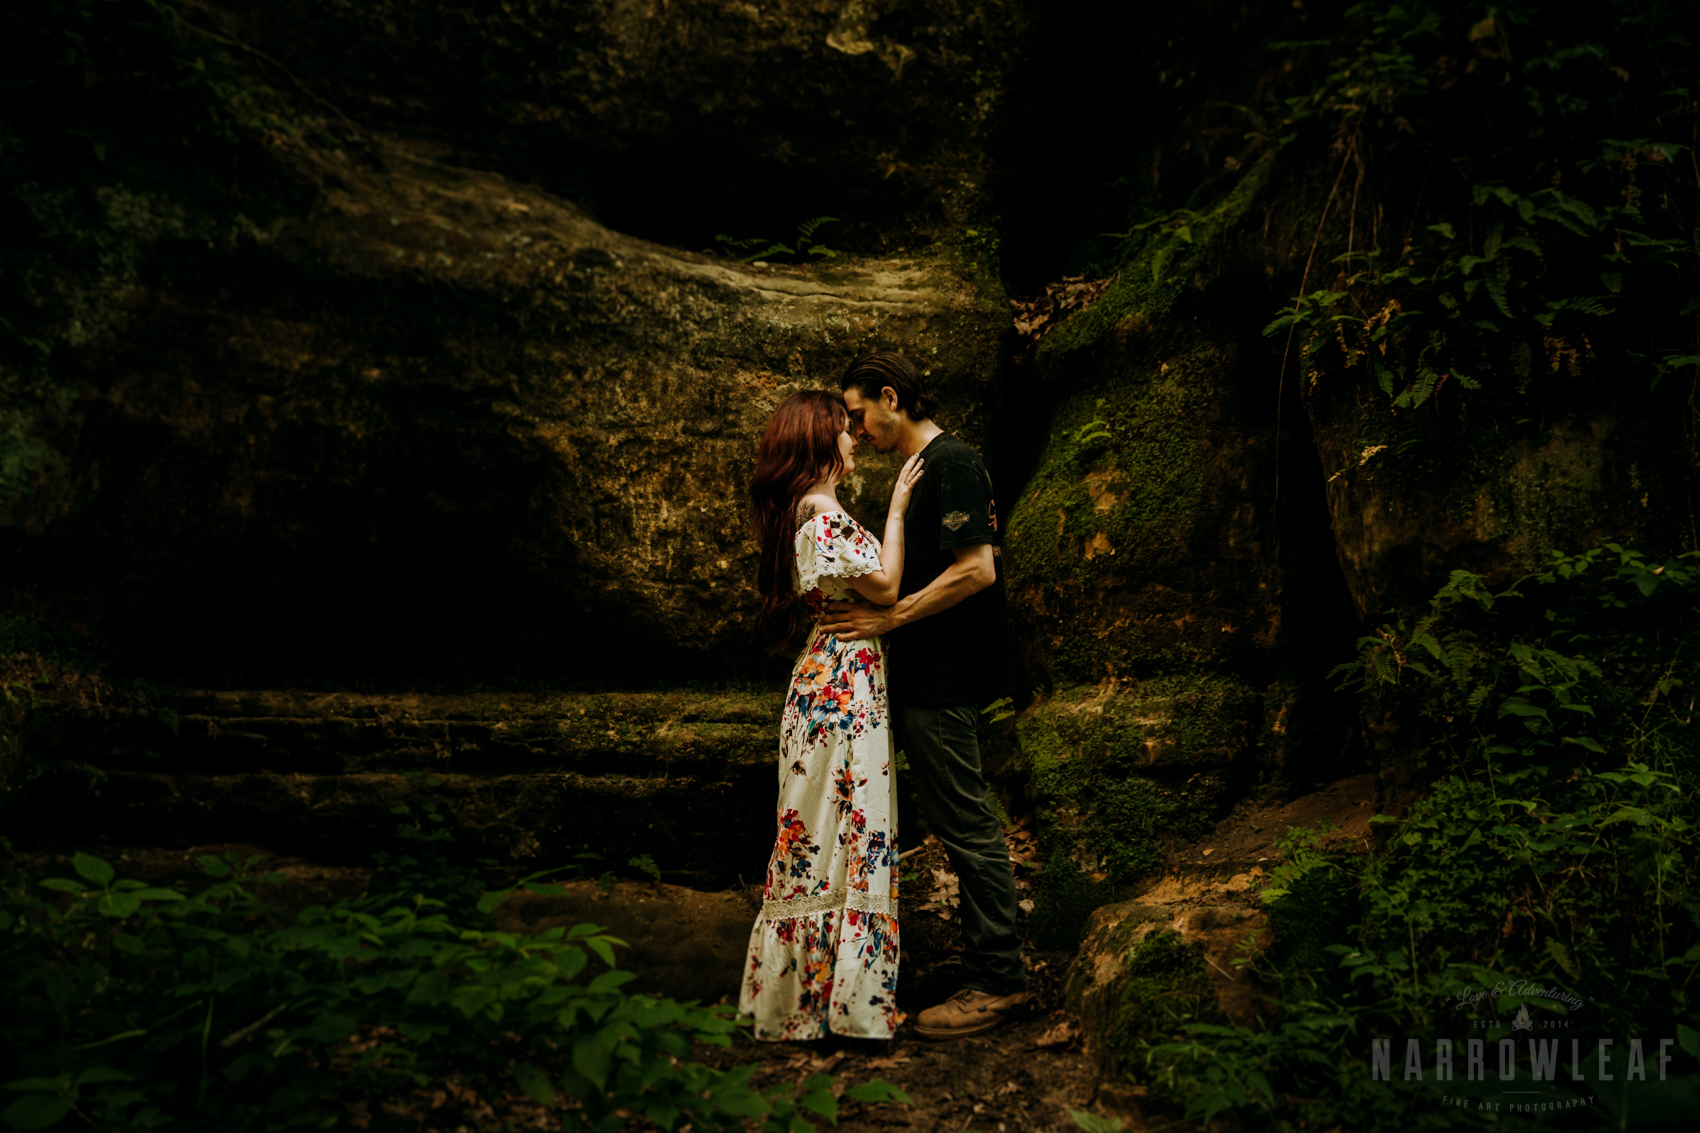 Perrot-state-park-woodsy-engagement-NarrowLeaf-love-and-adventure-Photography-42.jpg